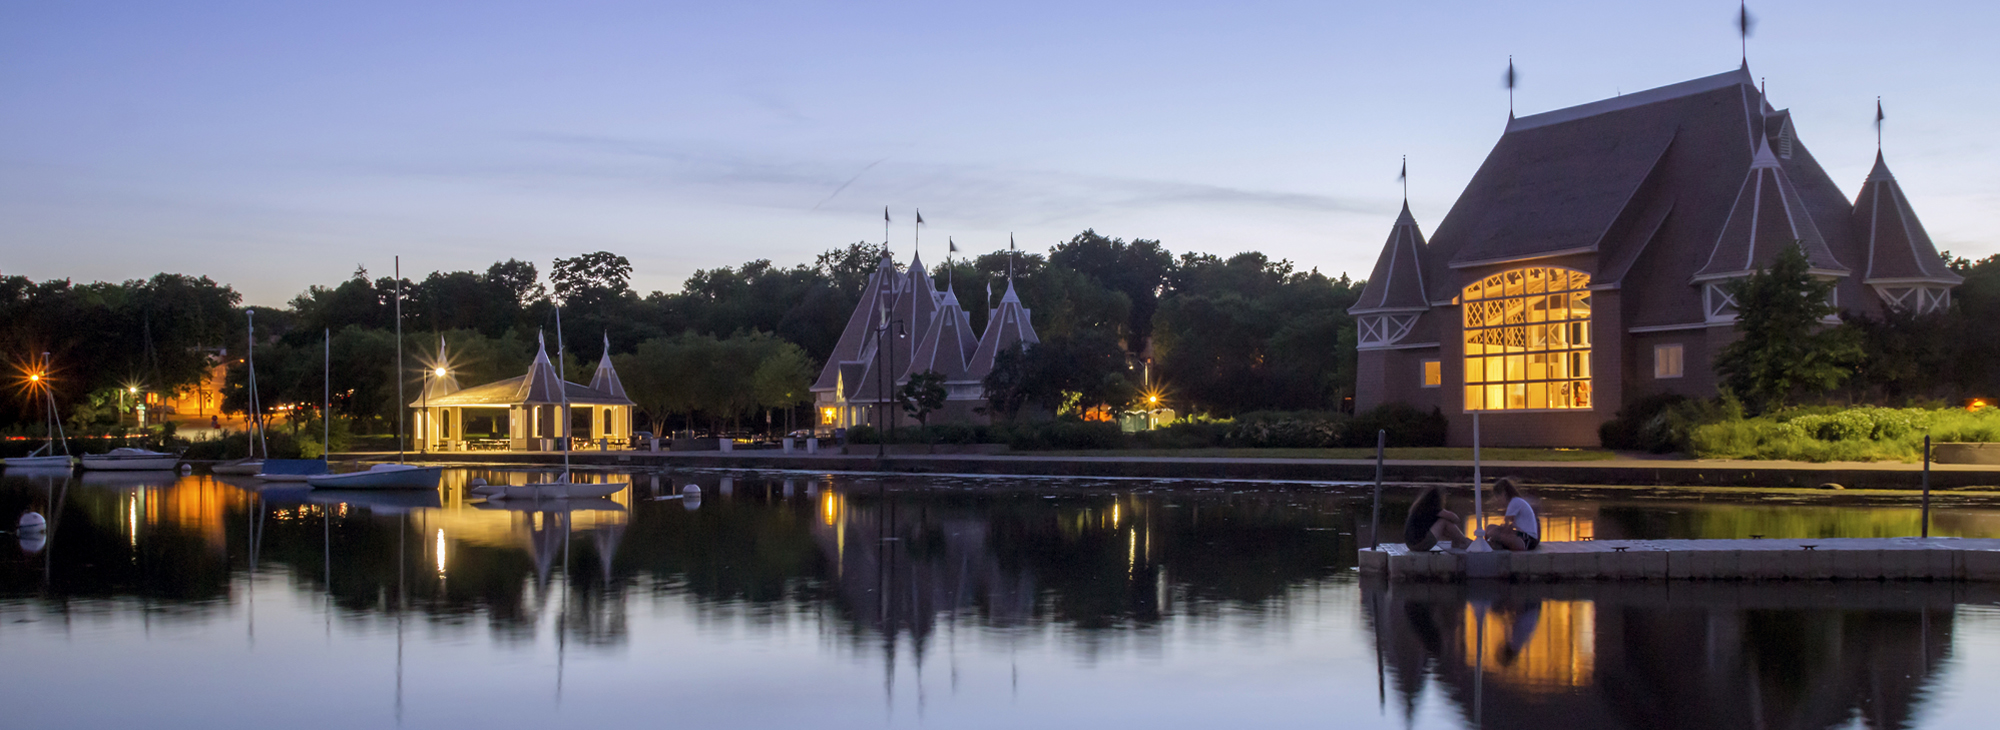 Photo of Lake Harriet Bandshell reflected in the lake at dusk - photo by Same Wagner: https://www.flickr.com/photos/samwagnerphotography/